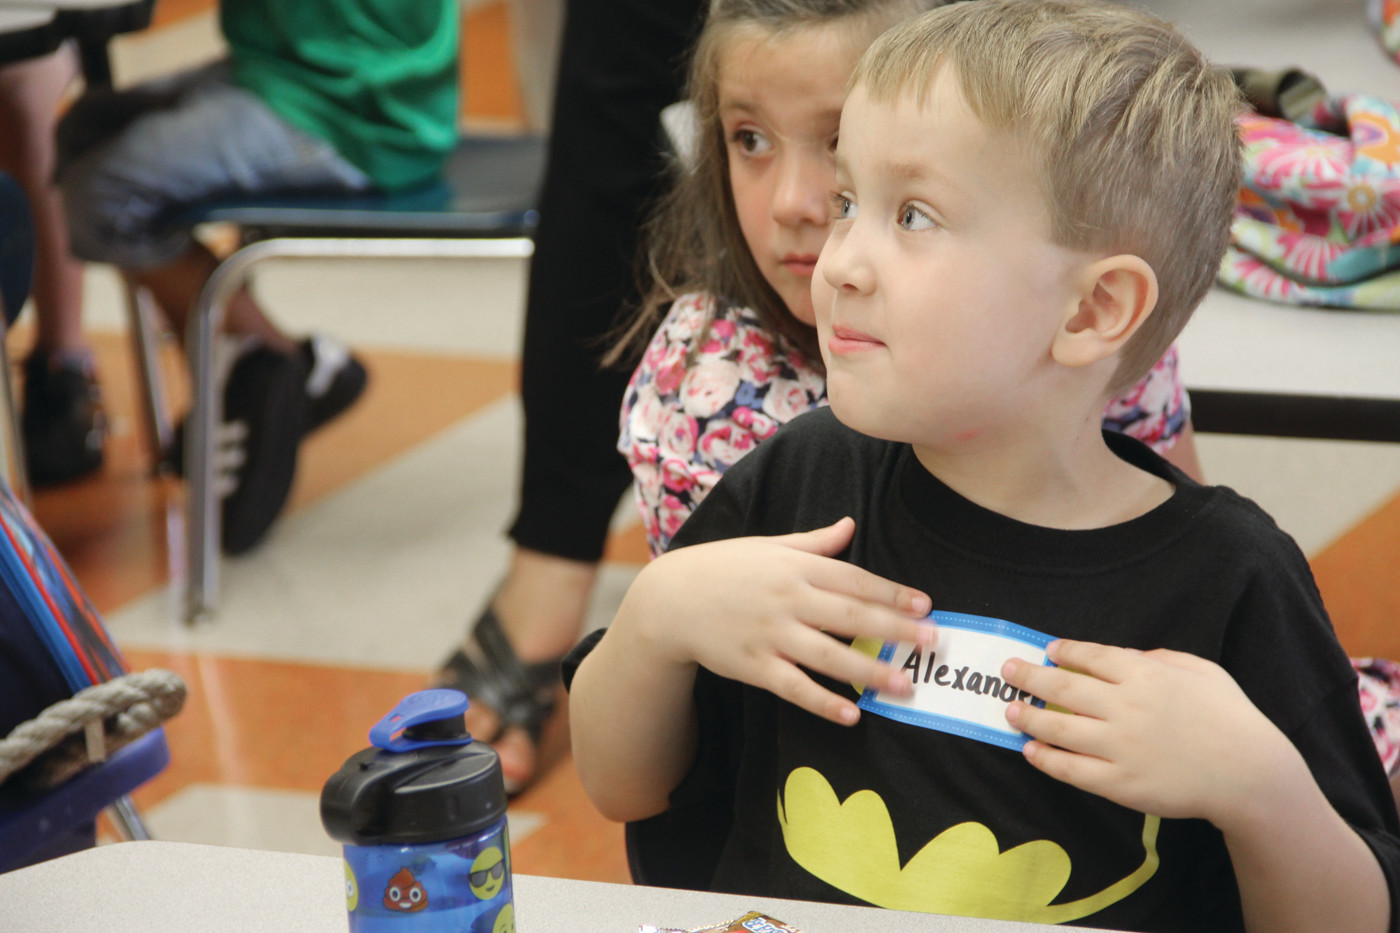 THAT'S ME: Kindergartener Alexander Nicolaides didn't hesitate to speak up during the first day of class.